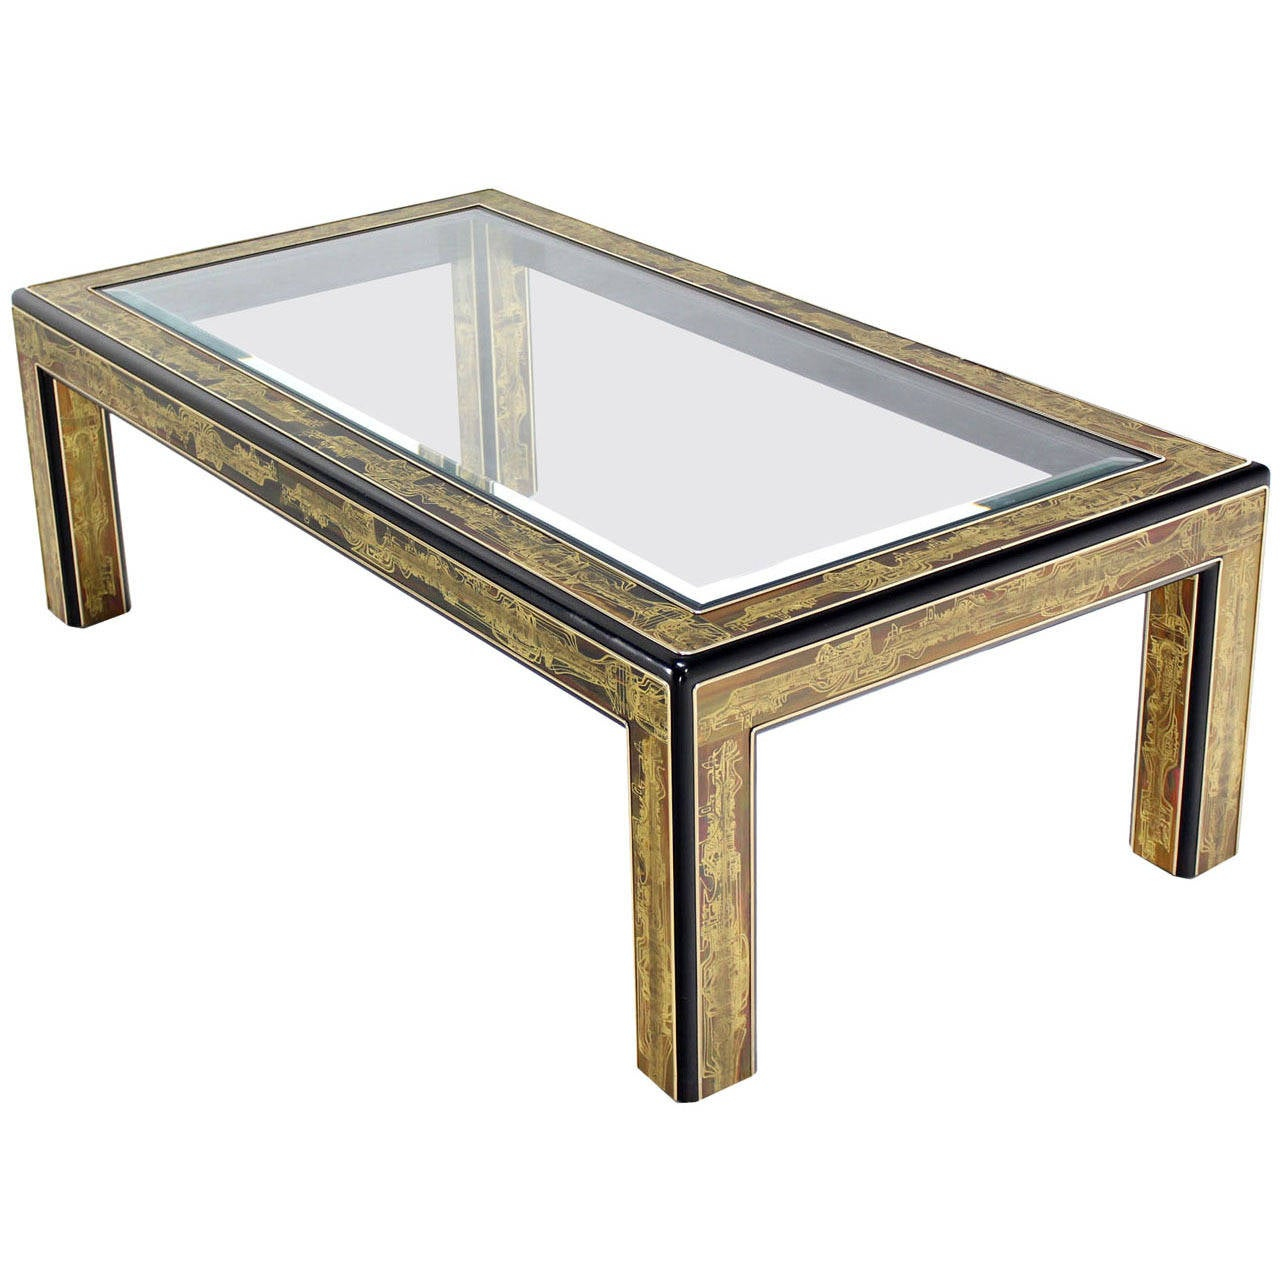 Rectangular glass top brass and wood base coffee table by mastercraft at 1stdibs Wood coffee table glass top